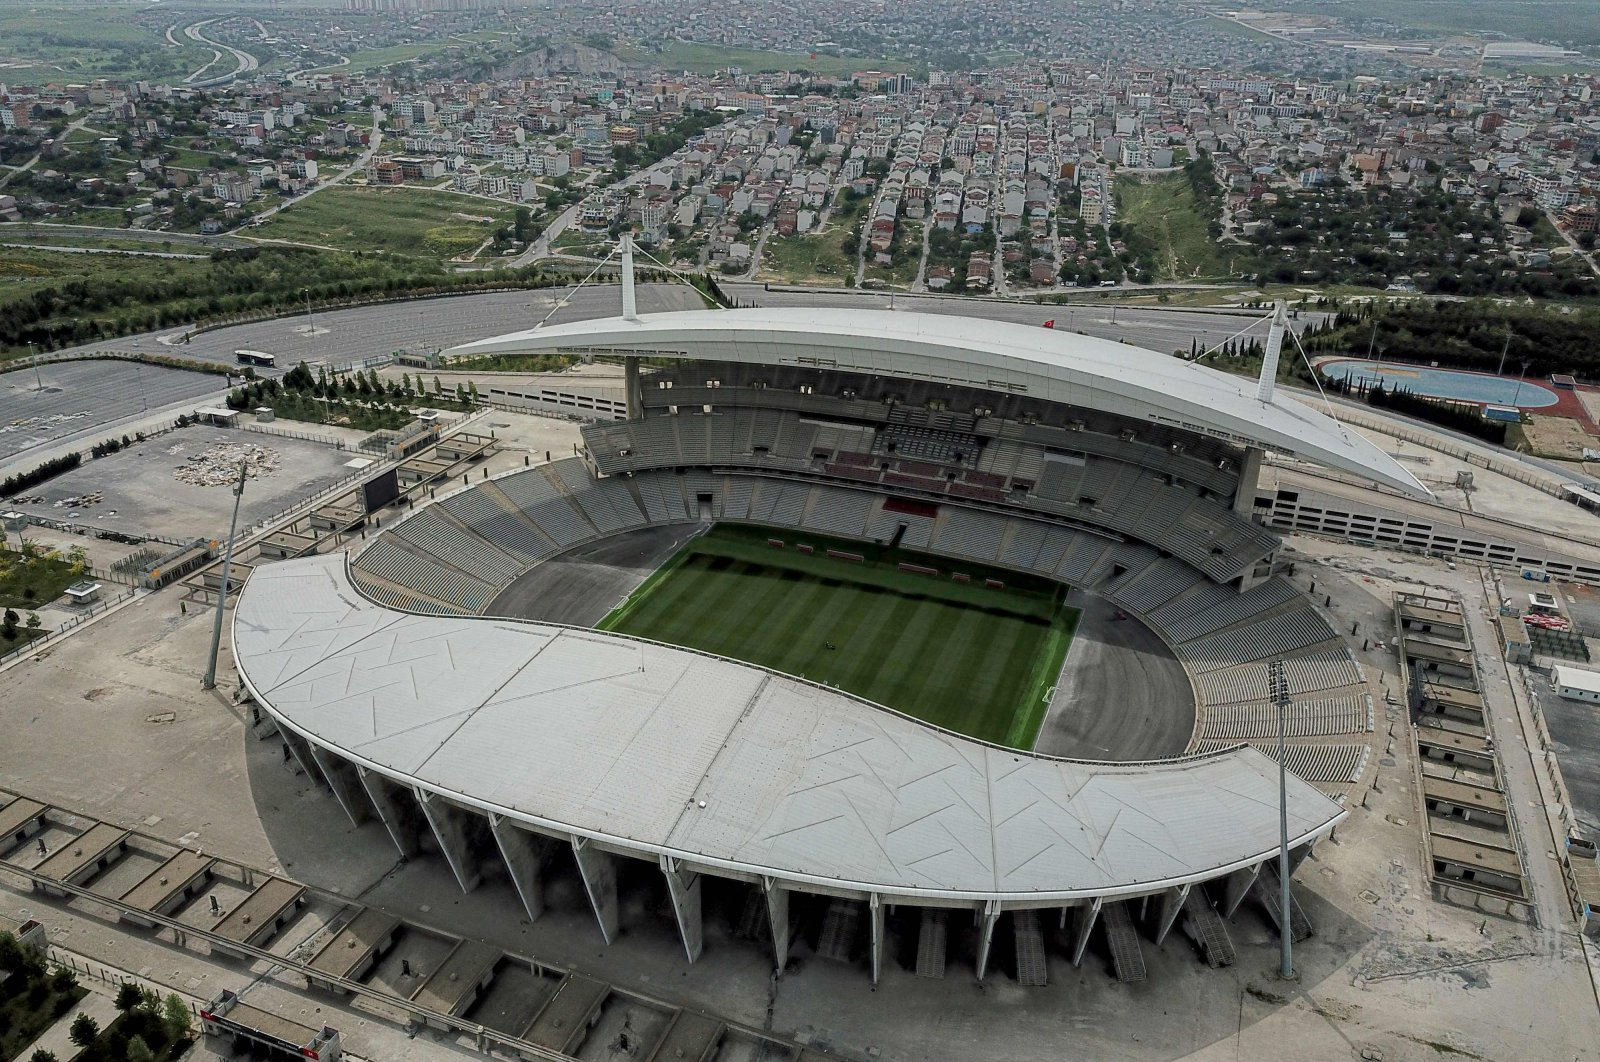 An aerial view shows Atatürk Olympic Stadium, slated to host the 2020 Champions League final, in Istanbul, Turkey, May 19, 2020. (AFP Photo)